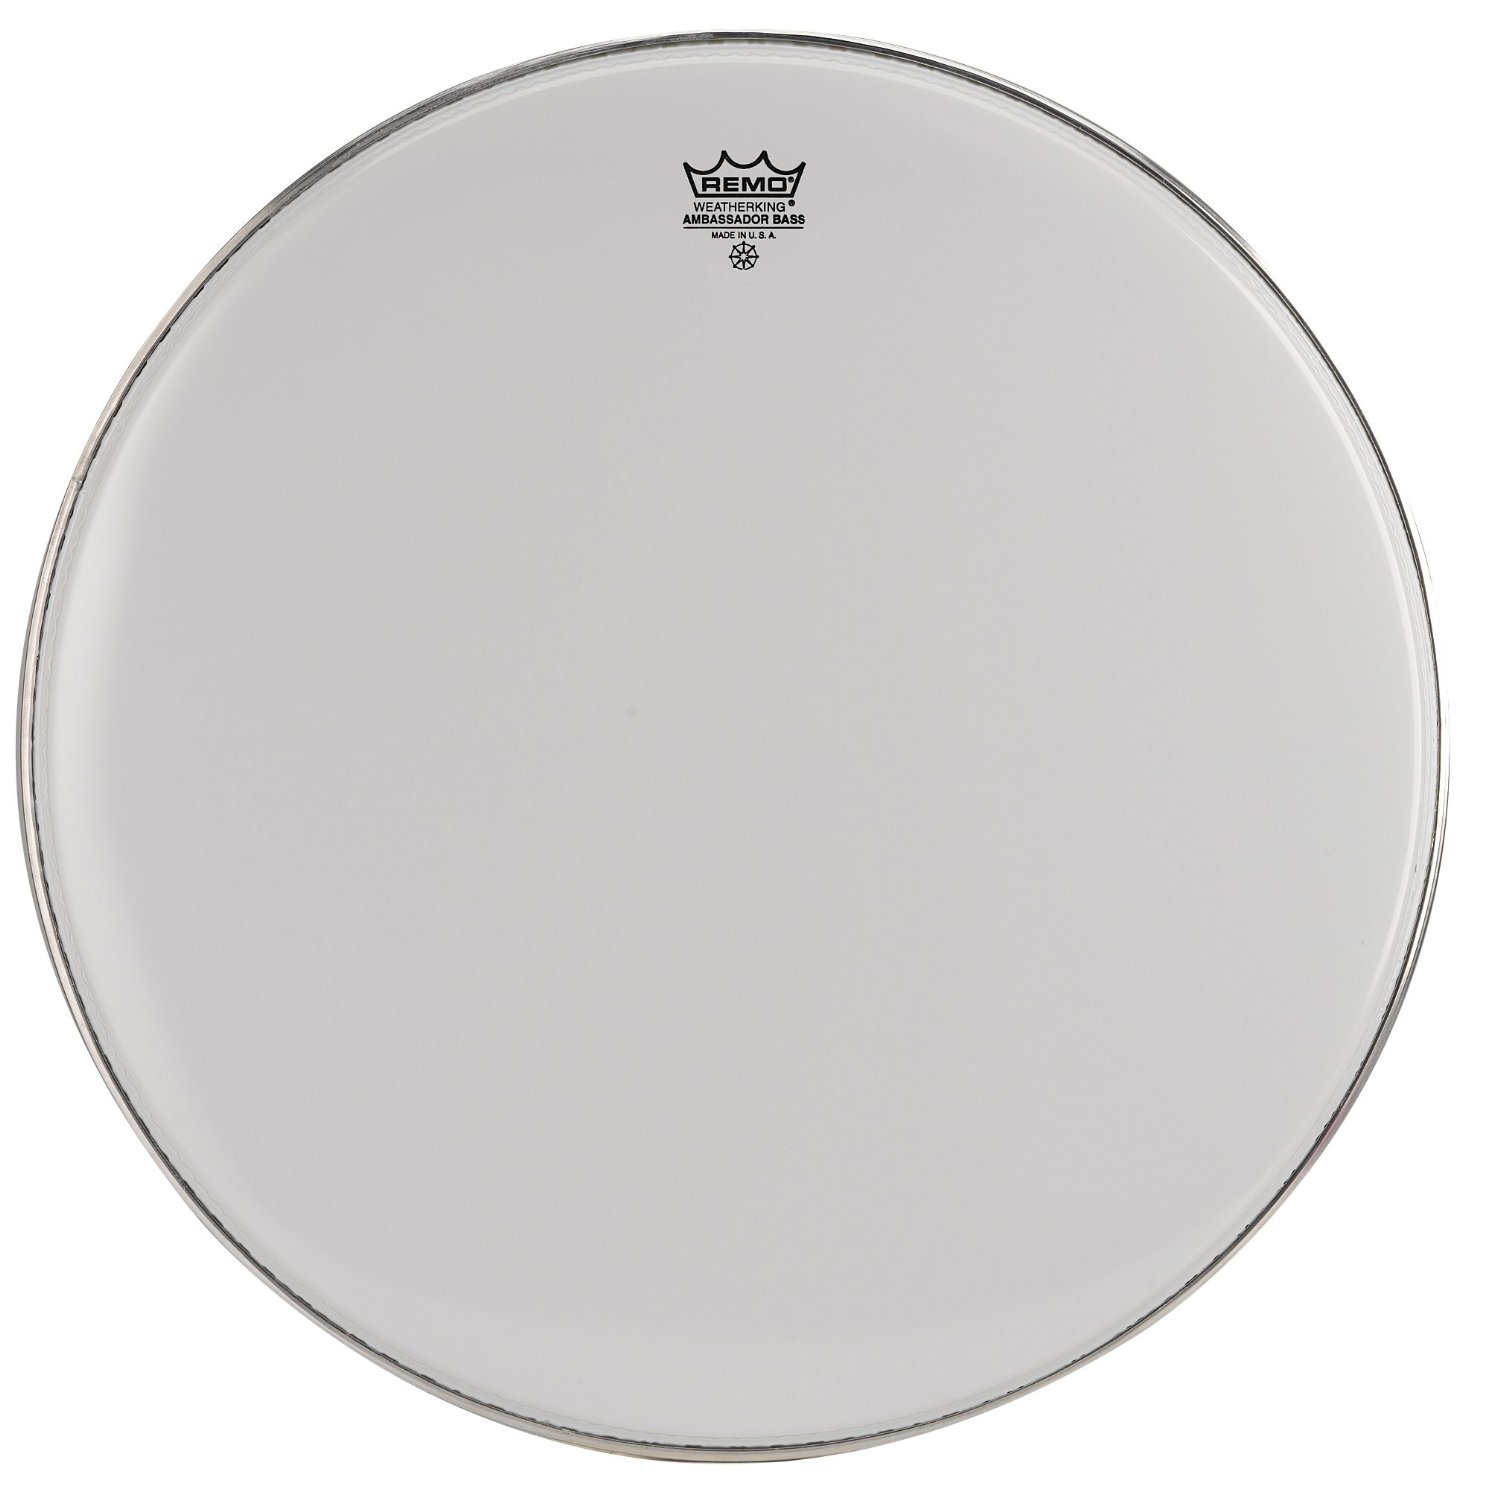 Remo BR1228-MP Smooth White Ambassador Marching Bass Drum Head - 28-Inch BR1228MP